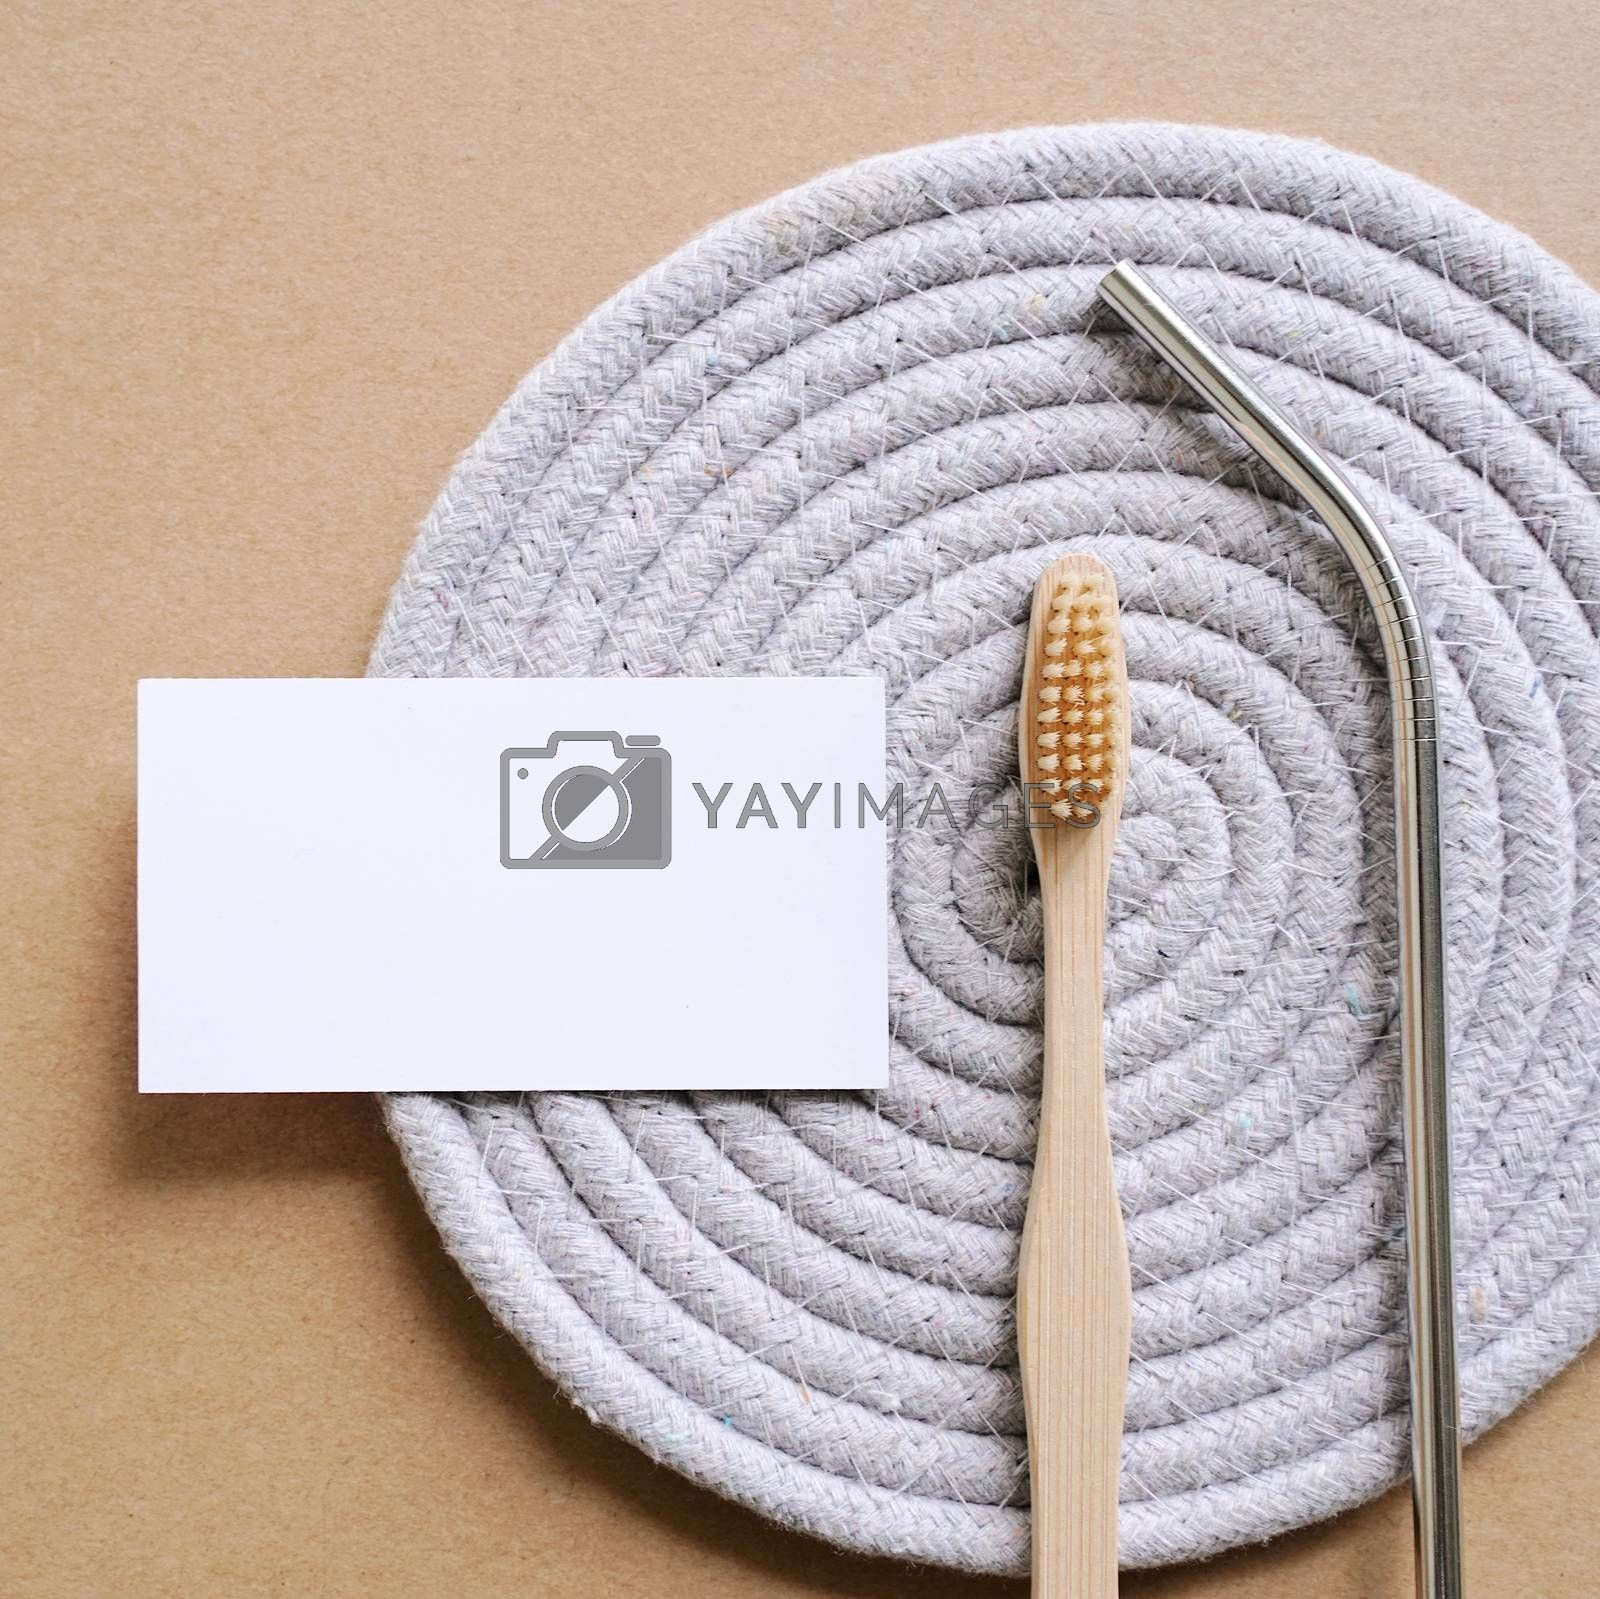 Flat lay branding identity business name card of sustainable products, stainless straw and bamboo toothbrush, minimal style